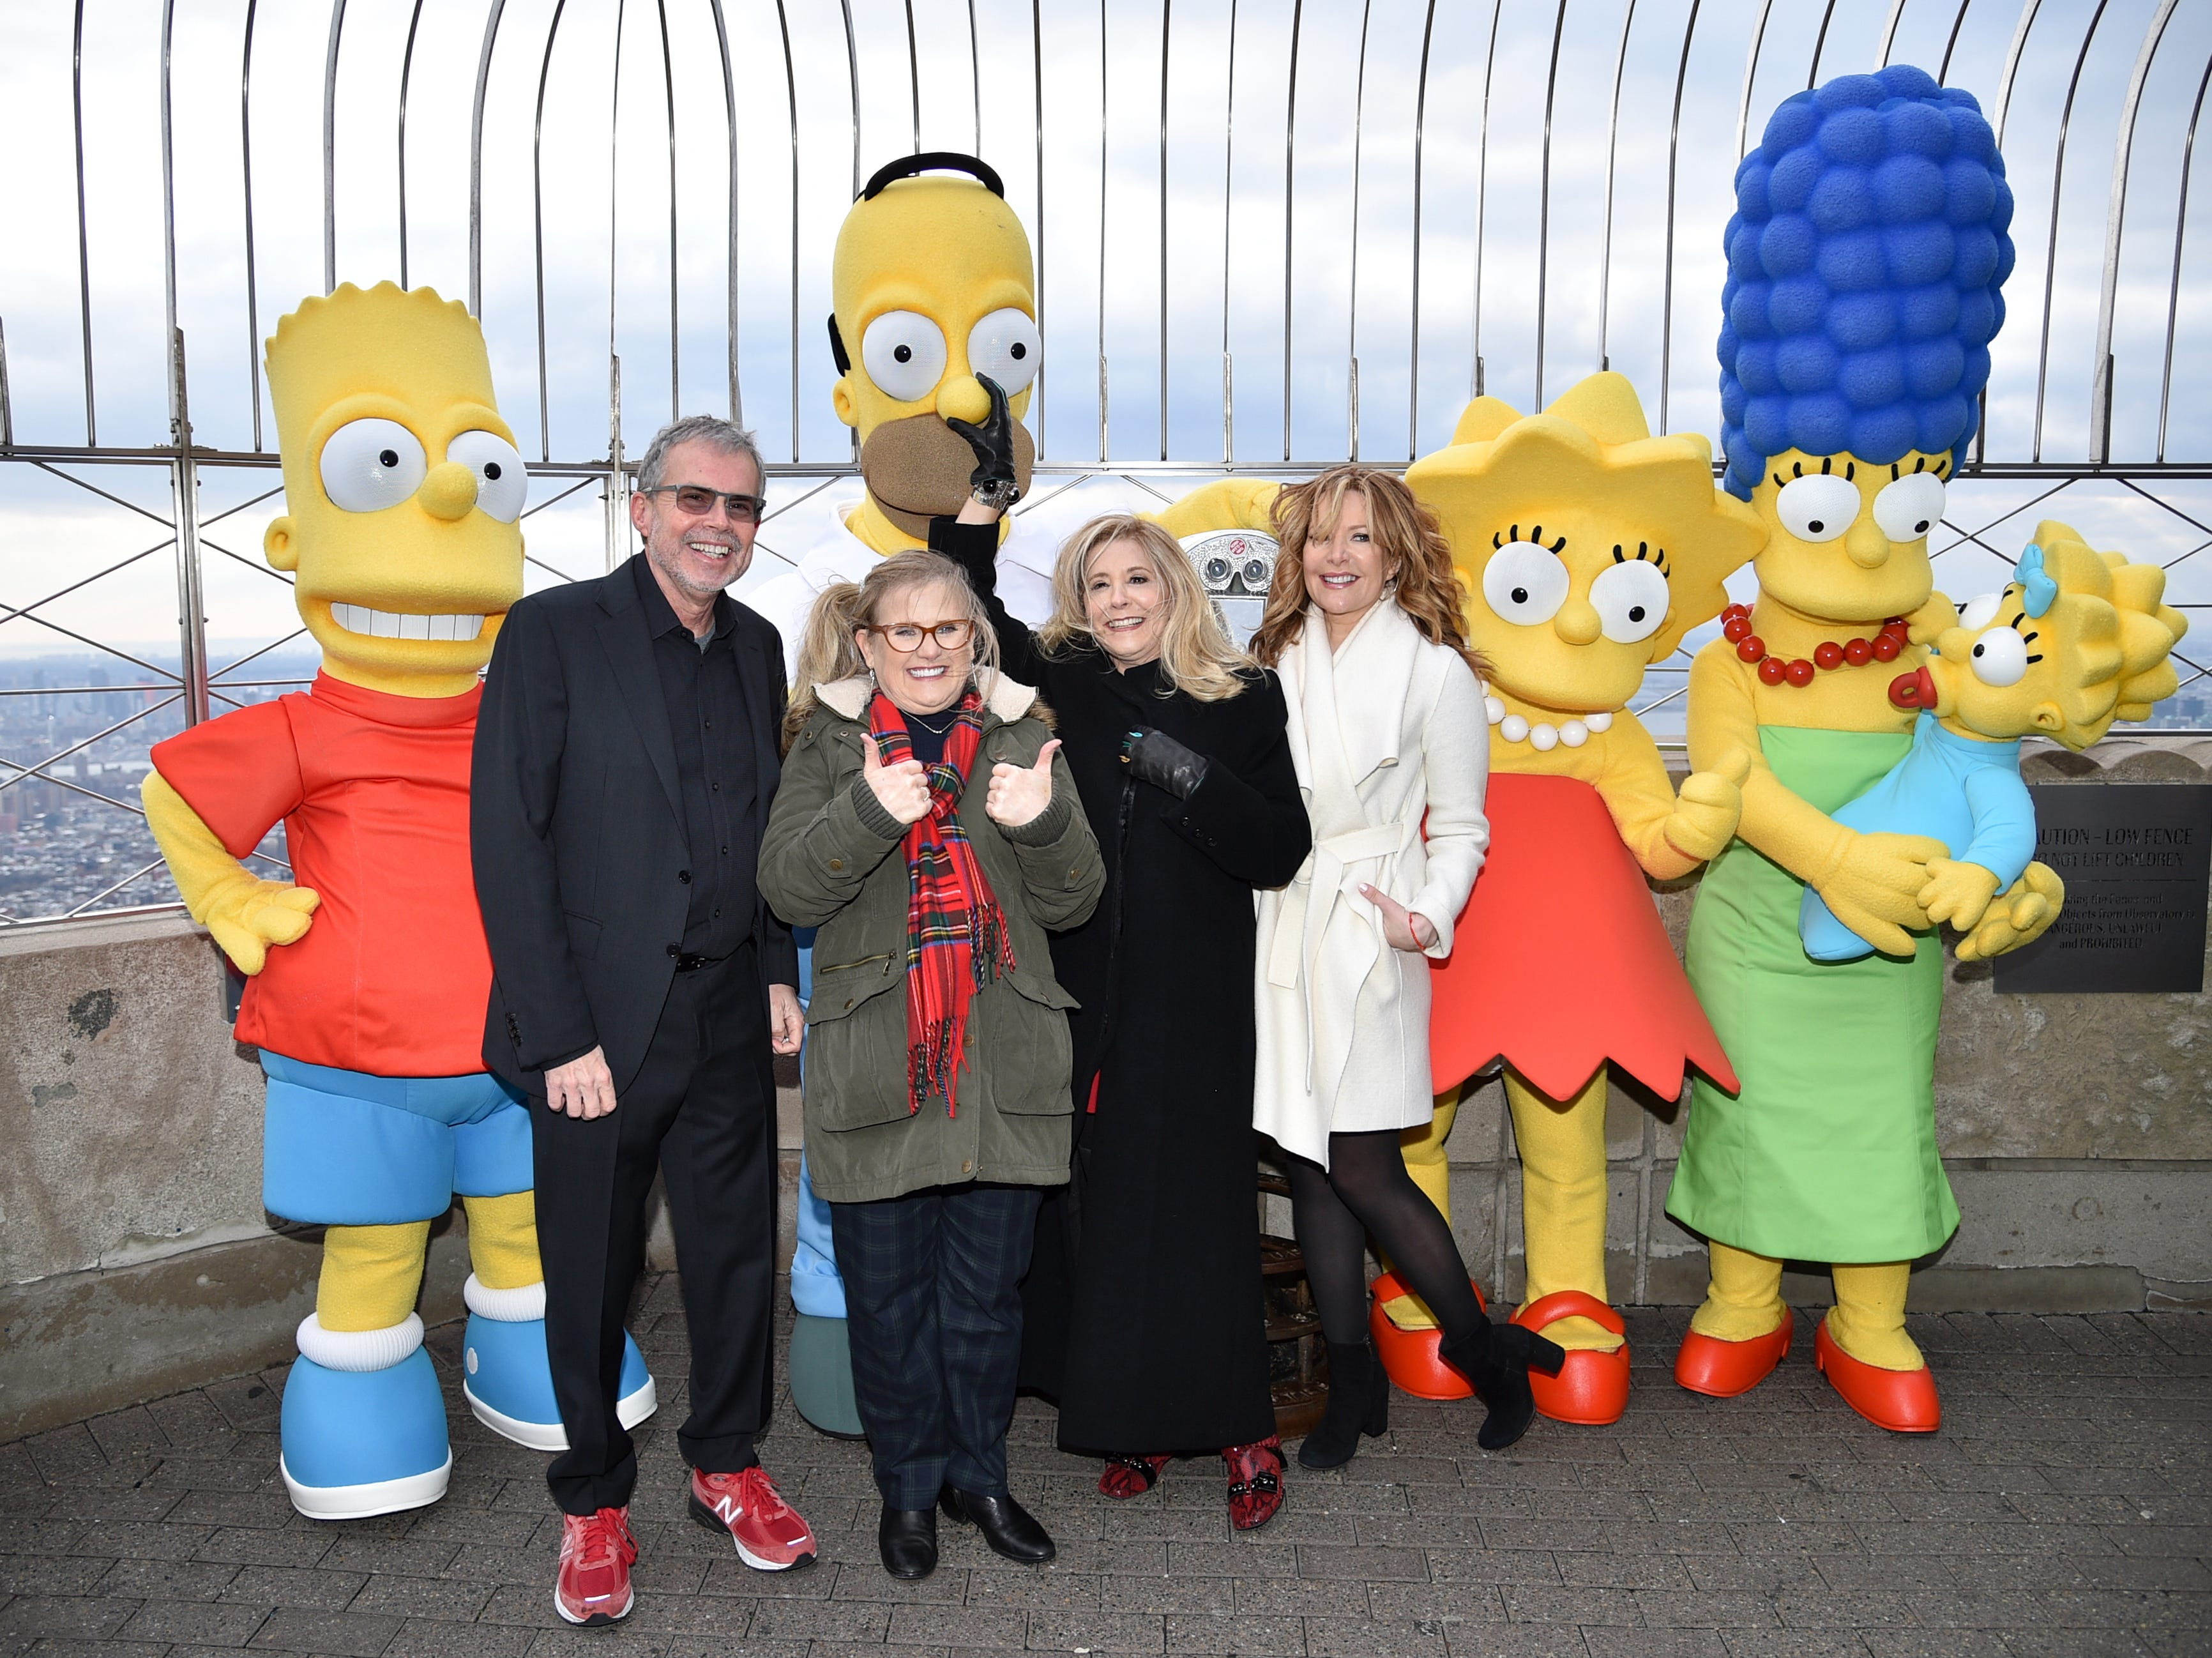 """Producer Mike Scully, left, voice actor Nancy Cartwright, voice actor Pamela Hayden and writer Stephanie Gillis pose with """"The Simpsons"""" costumed characters during Fox's """"The Simpsons"""" 30th anniversary celebration at the Empire State Building on Monday, Dec. 17, 2018, in New York. (Photo by Evan Agostini/Invision/AP) ORG XMIT: NYEA116"""